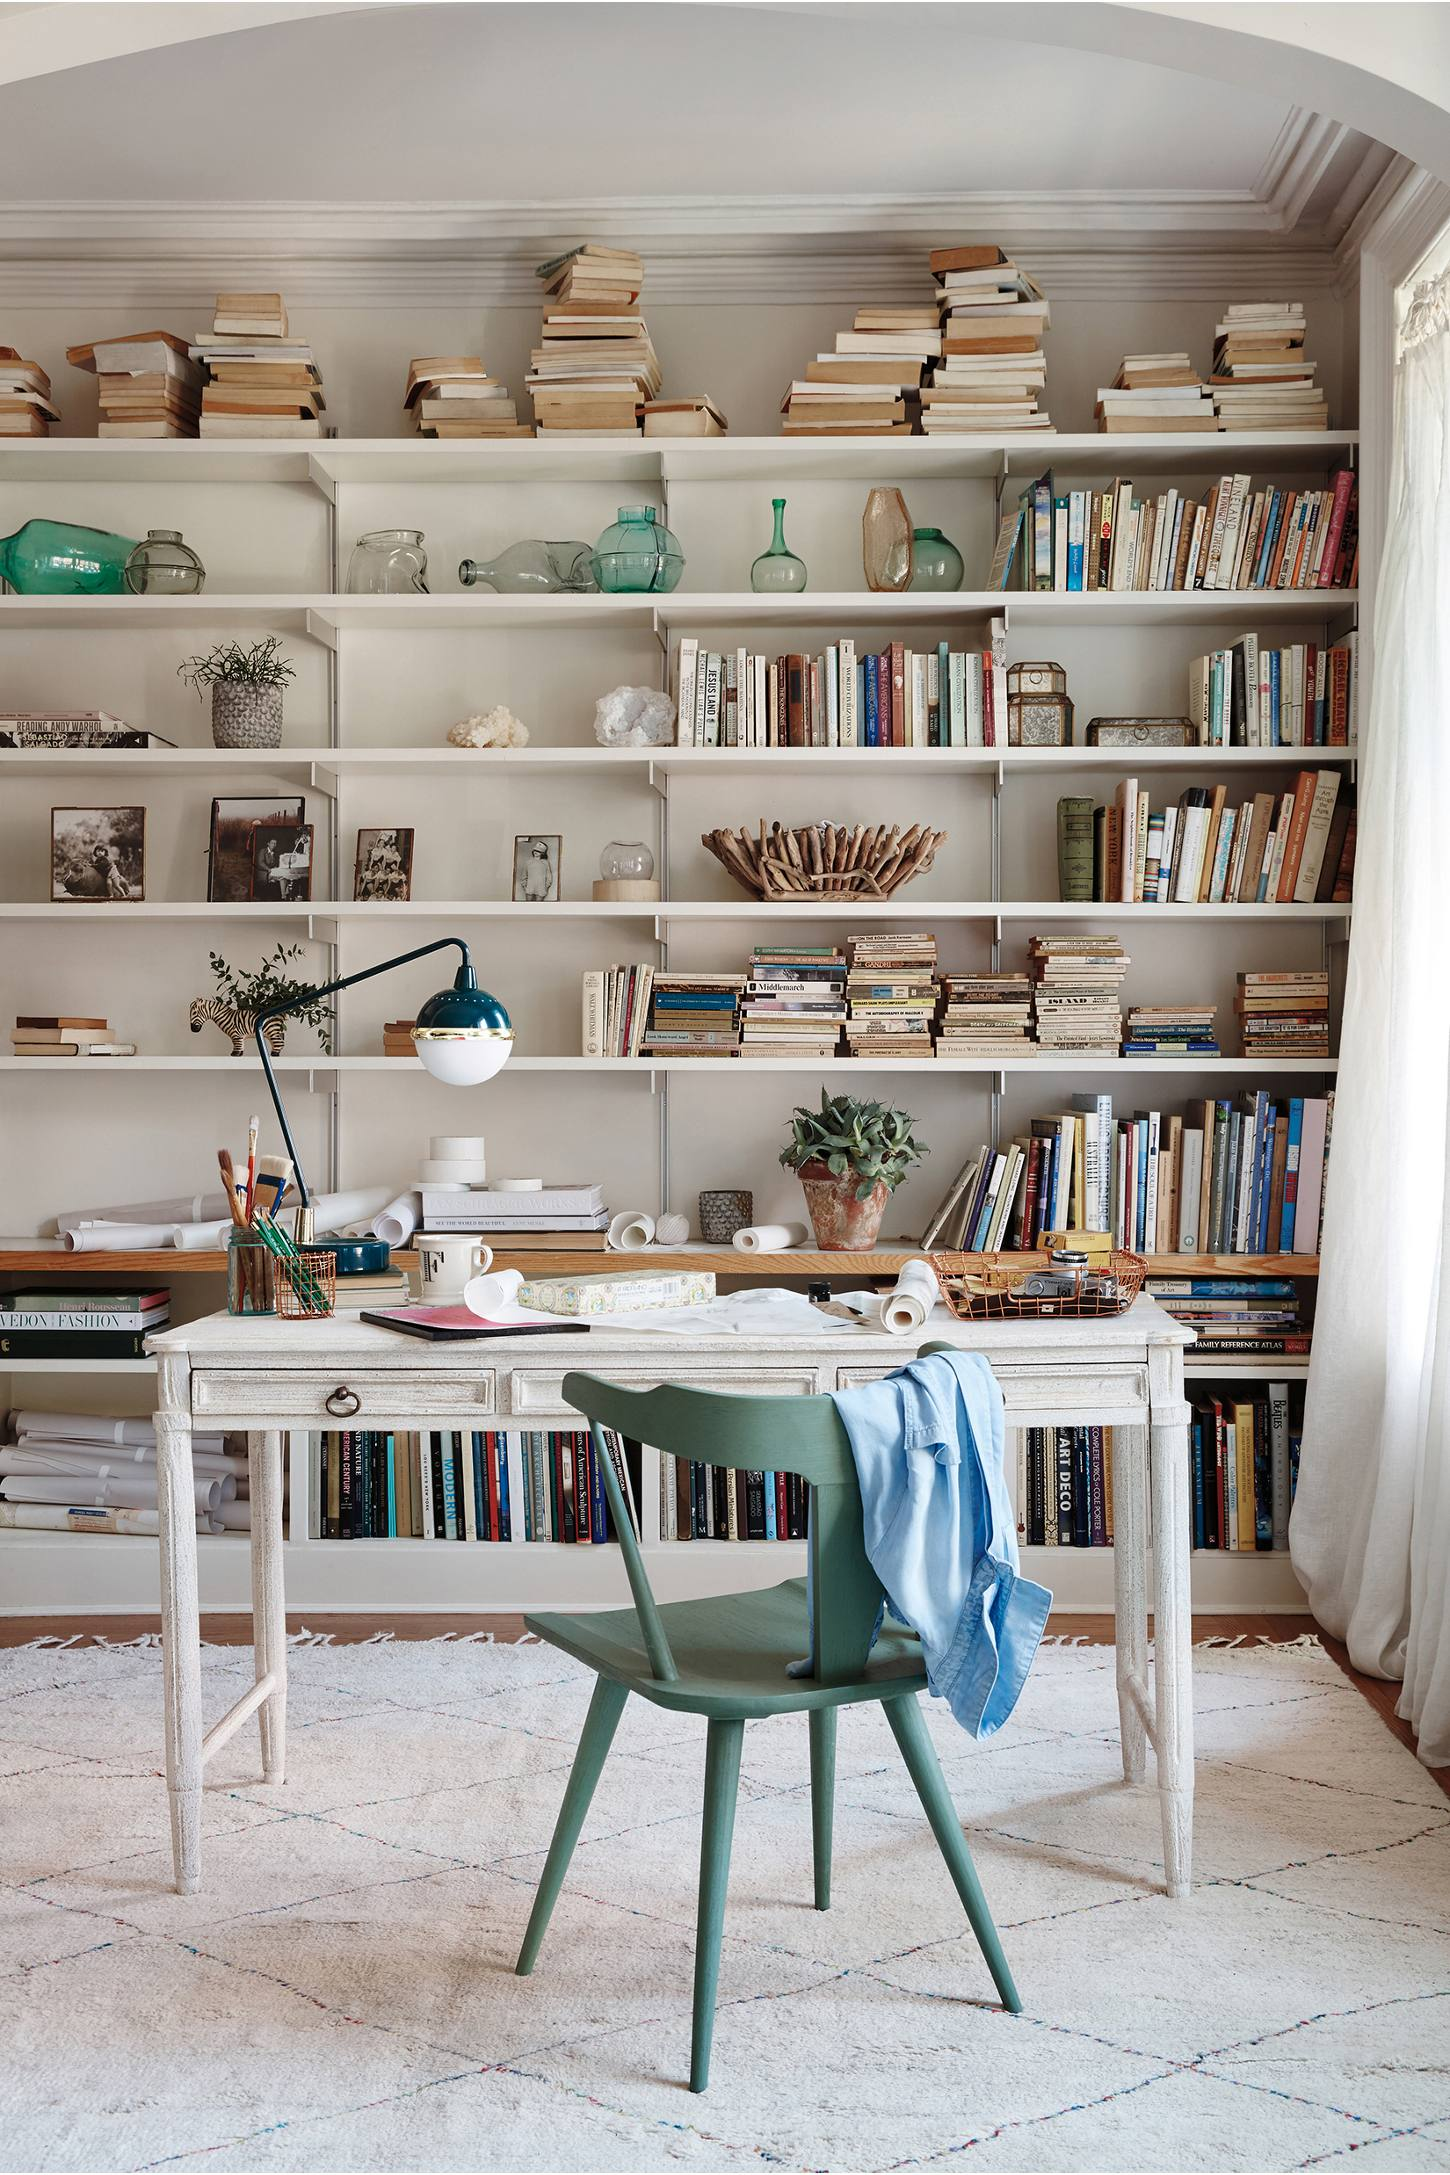 The 11 Best Pieces From Anthropologies Massive New Spring Home Decor Launch